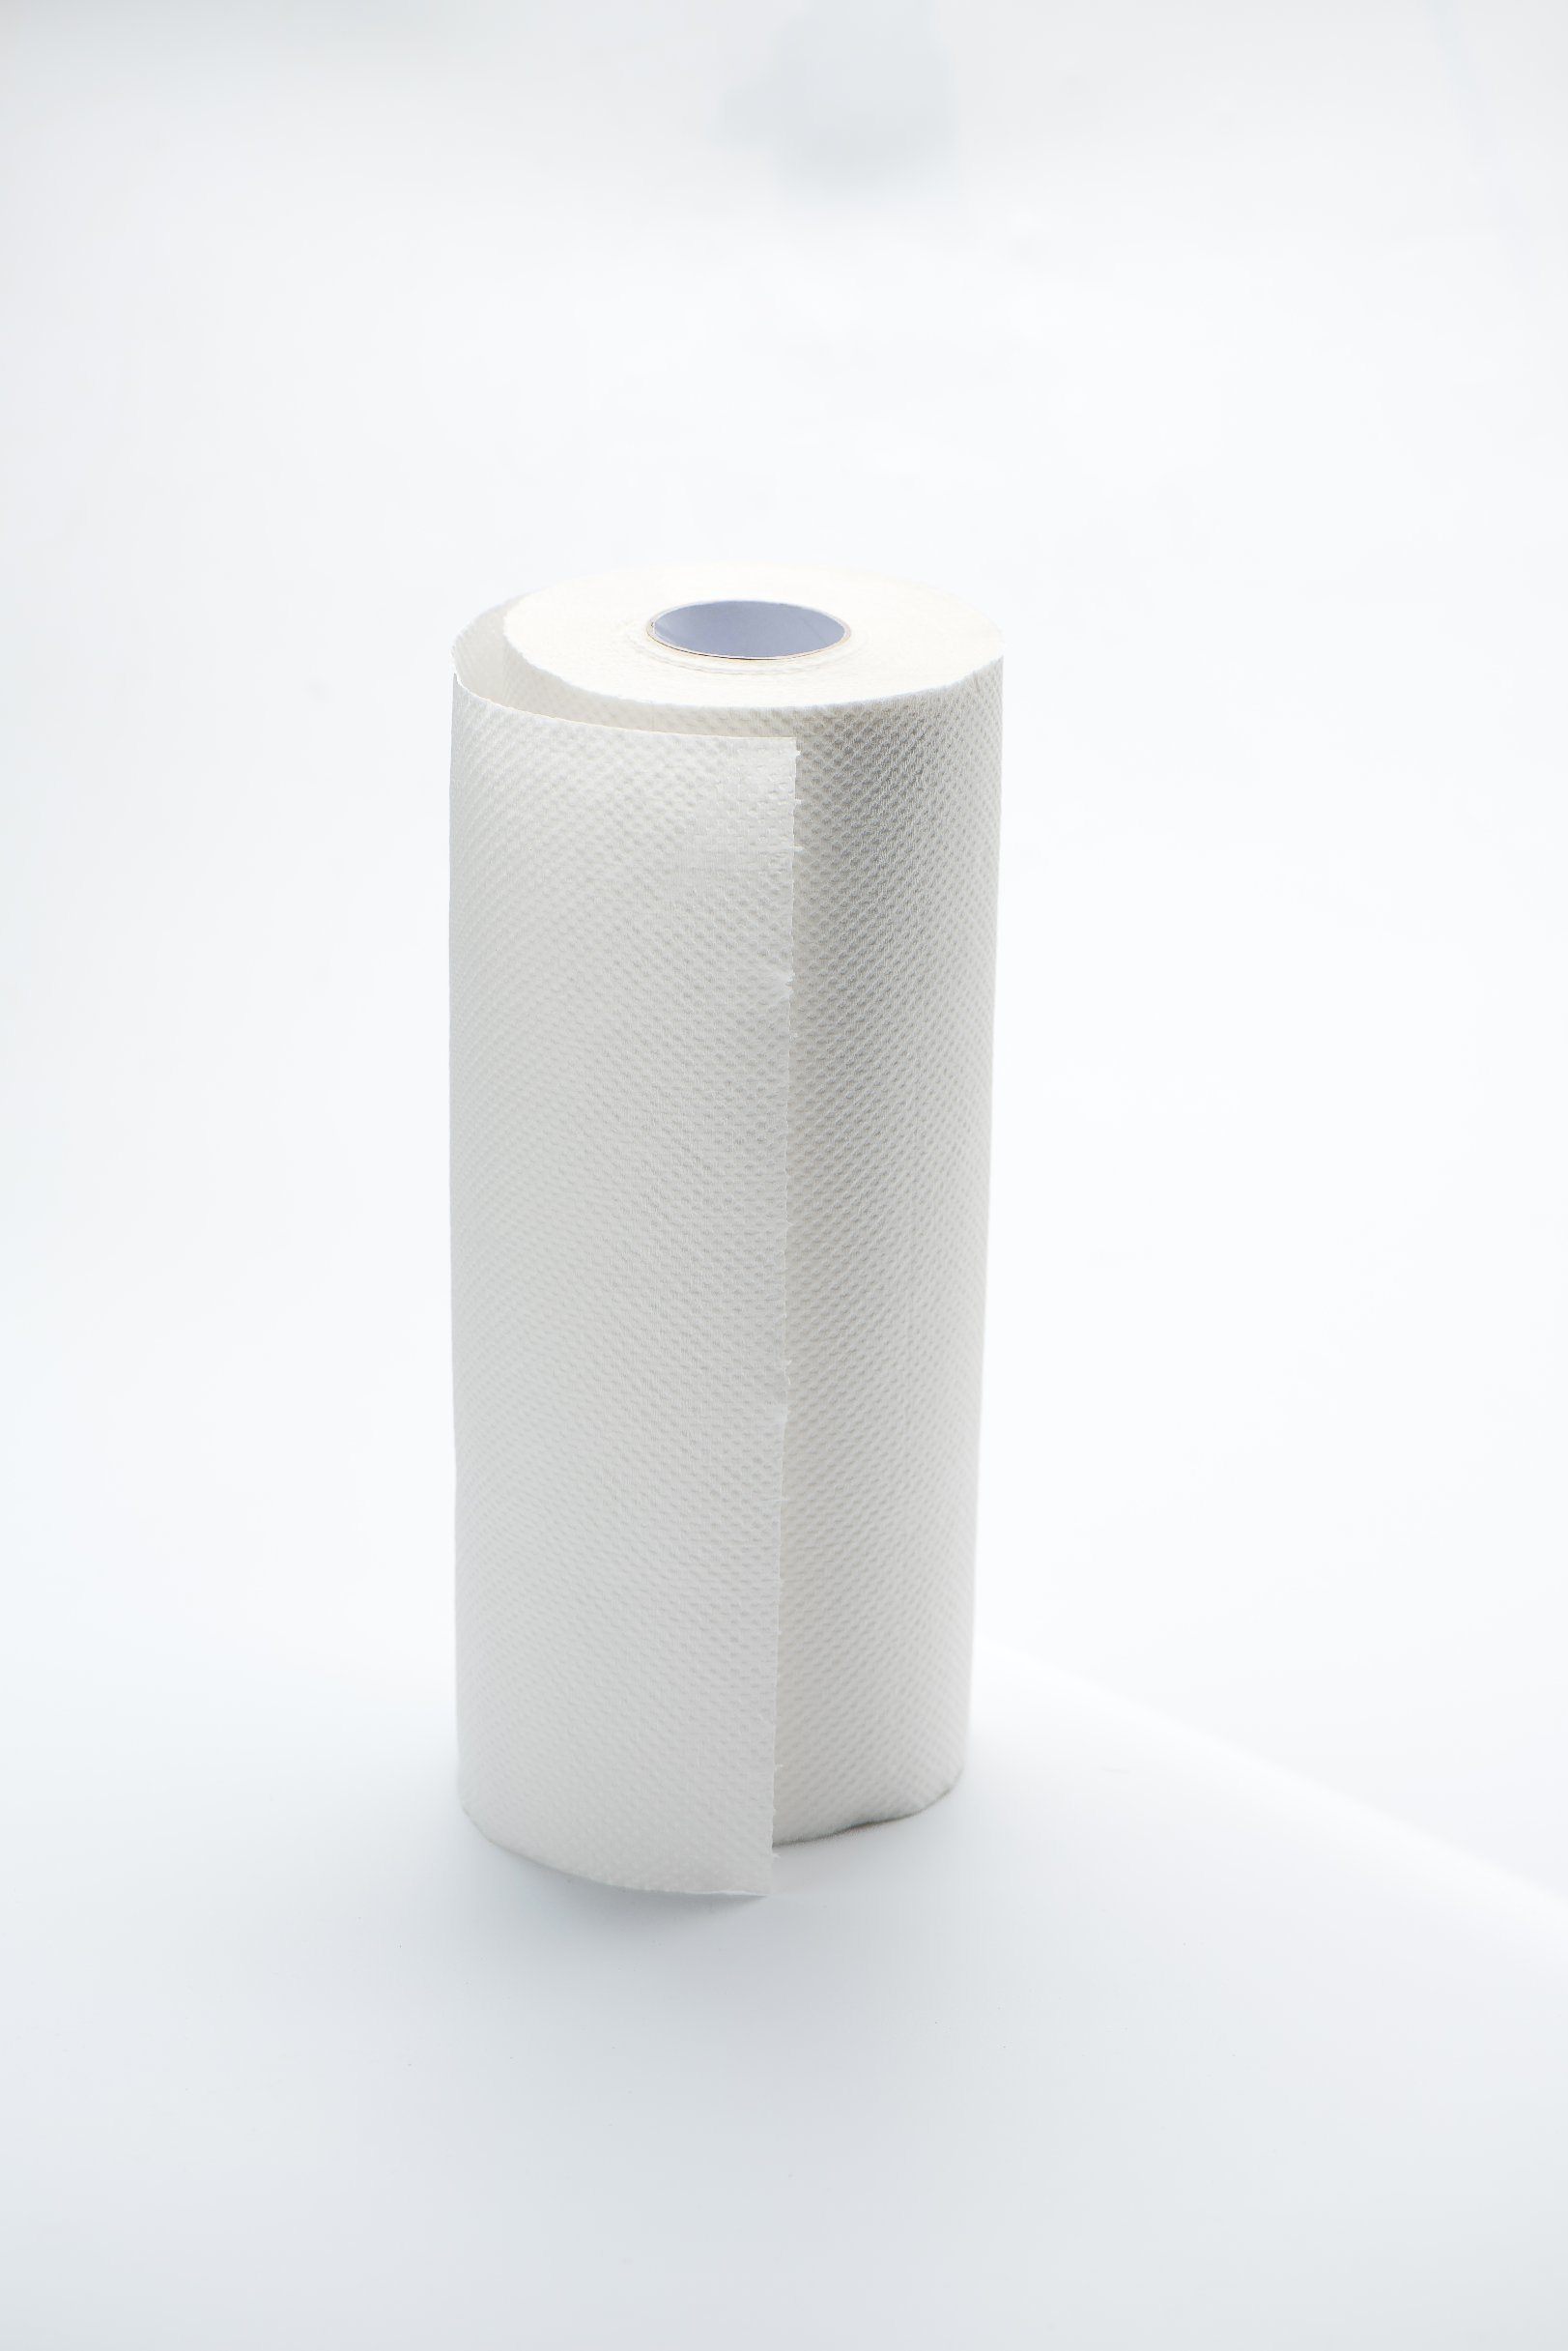 Ordinaire China Factory Price Dish Cleaning Kitchen Paper Towel   China Kitchen Paper  Towel, Paper Towel